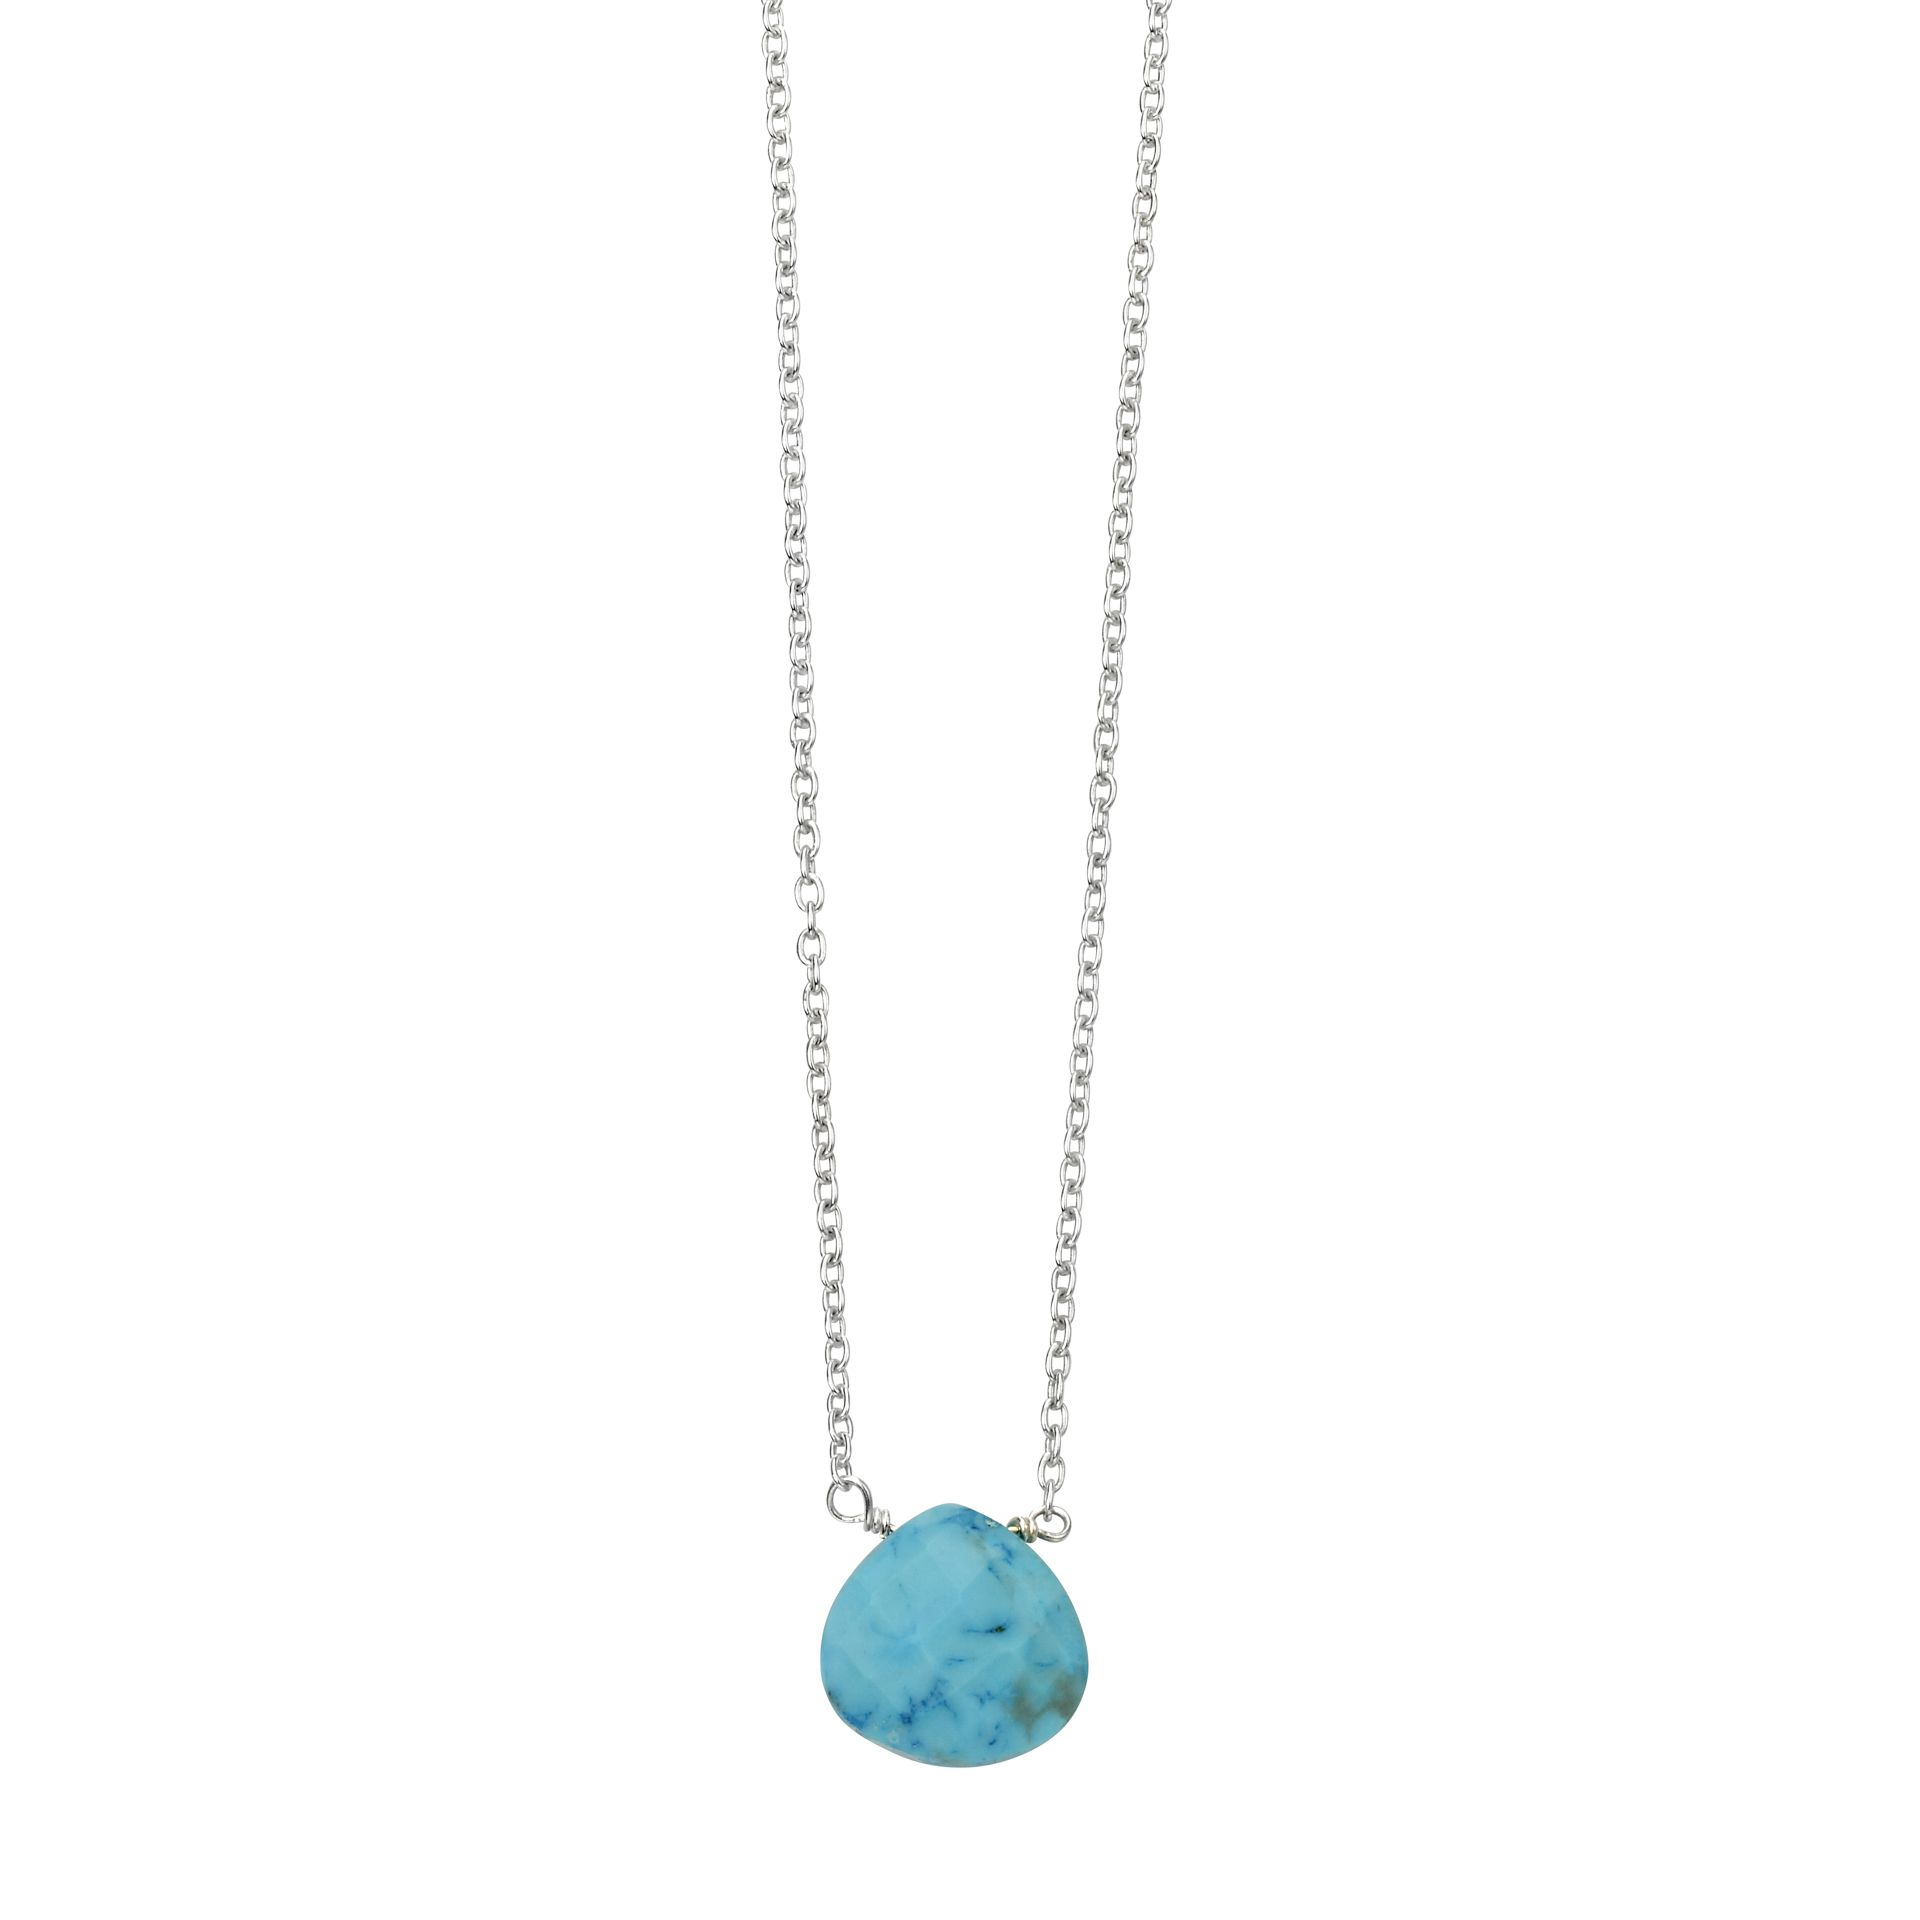 Beginnings 925 Sterling Silver Faceted Semi Precious Blue Magnesite Stone Teardrop Charm Necklace 41-46cm